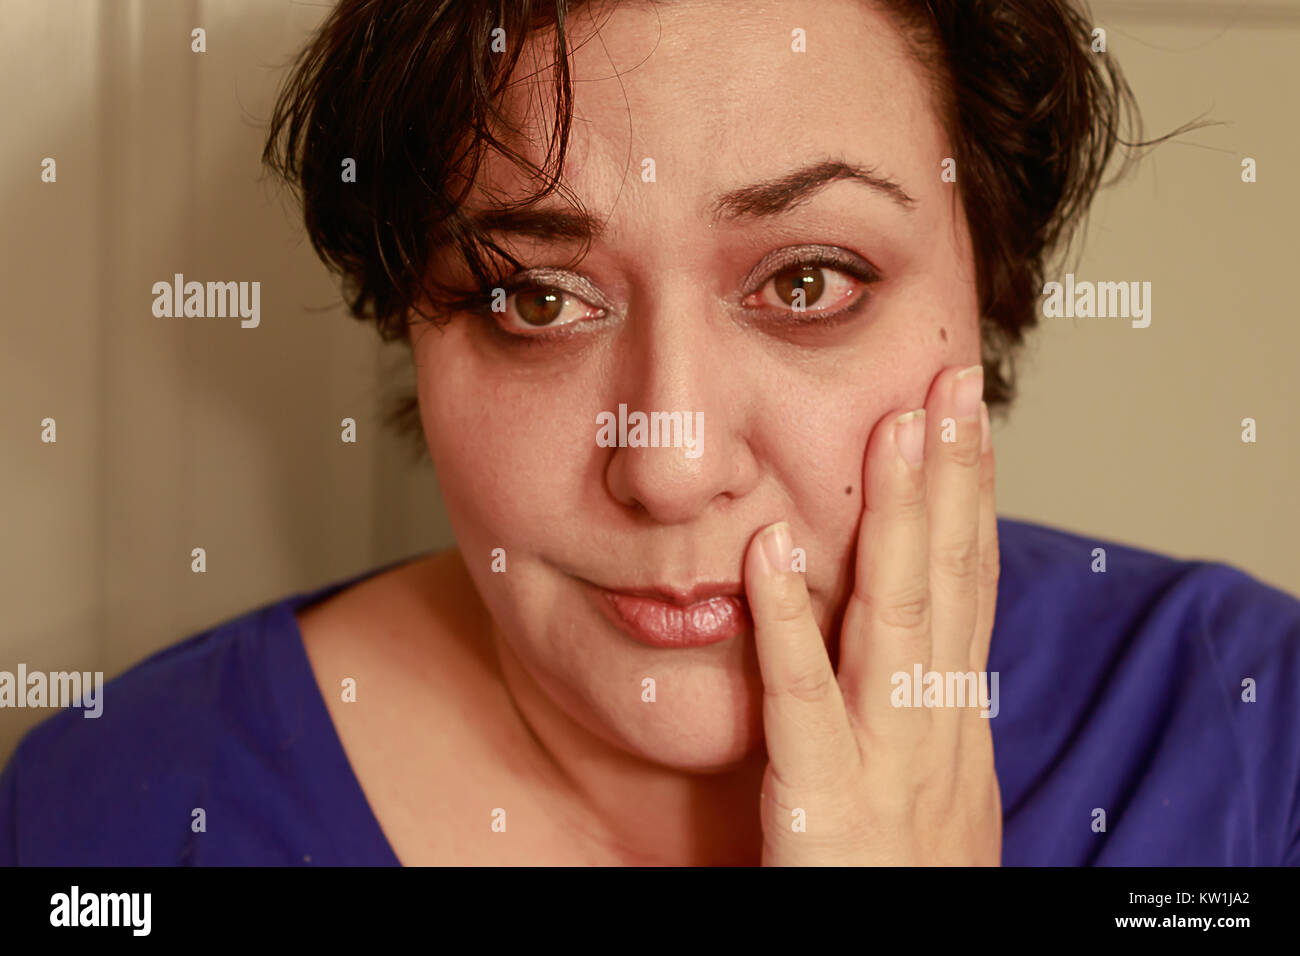 worried woman with short hair - Stock Image